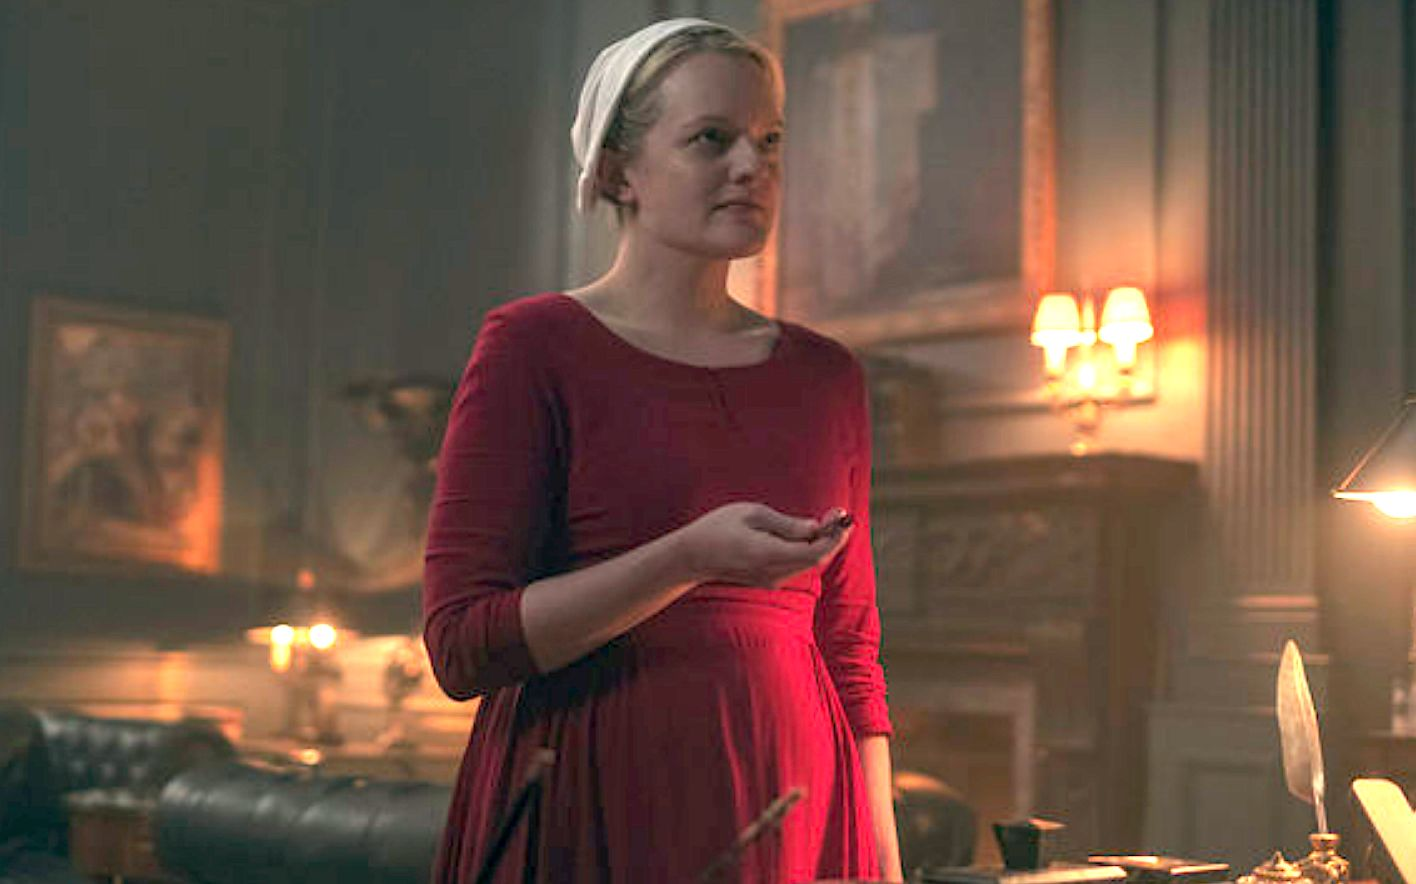 In 'The Handmaid's Tale,' The Greatest Threat Is A Woman With A